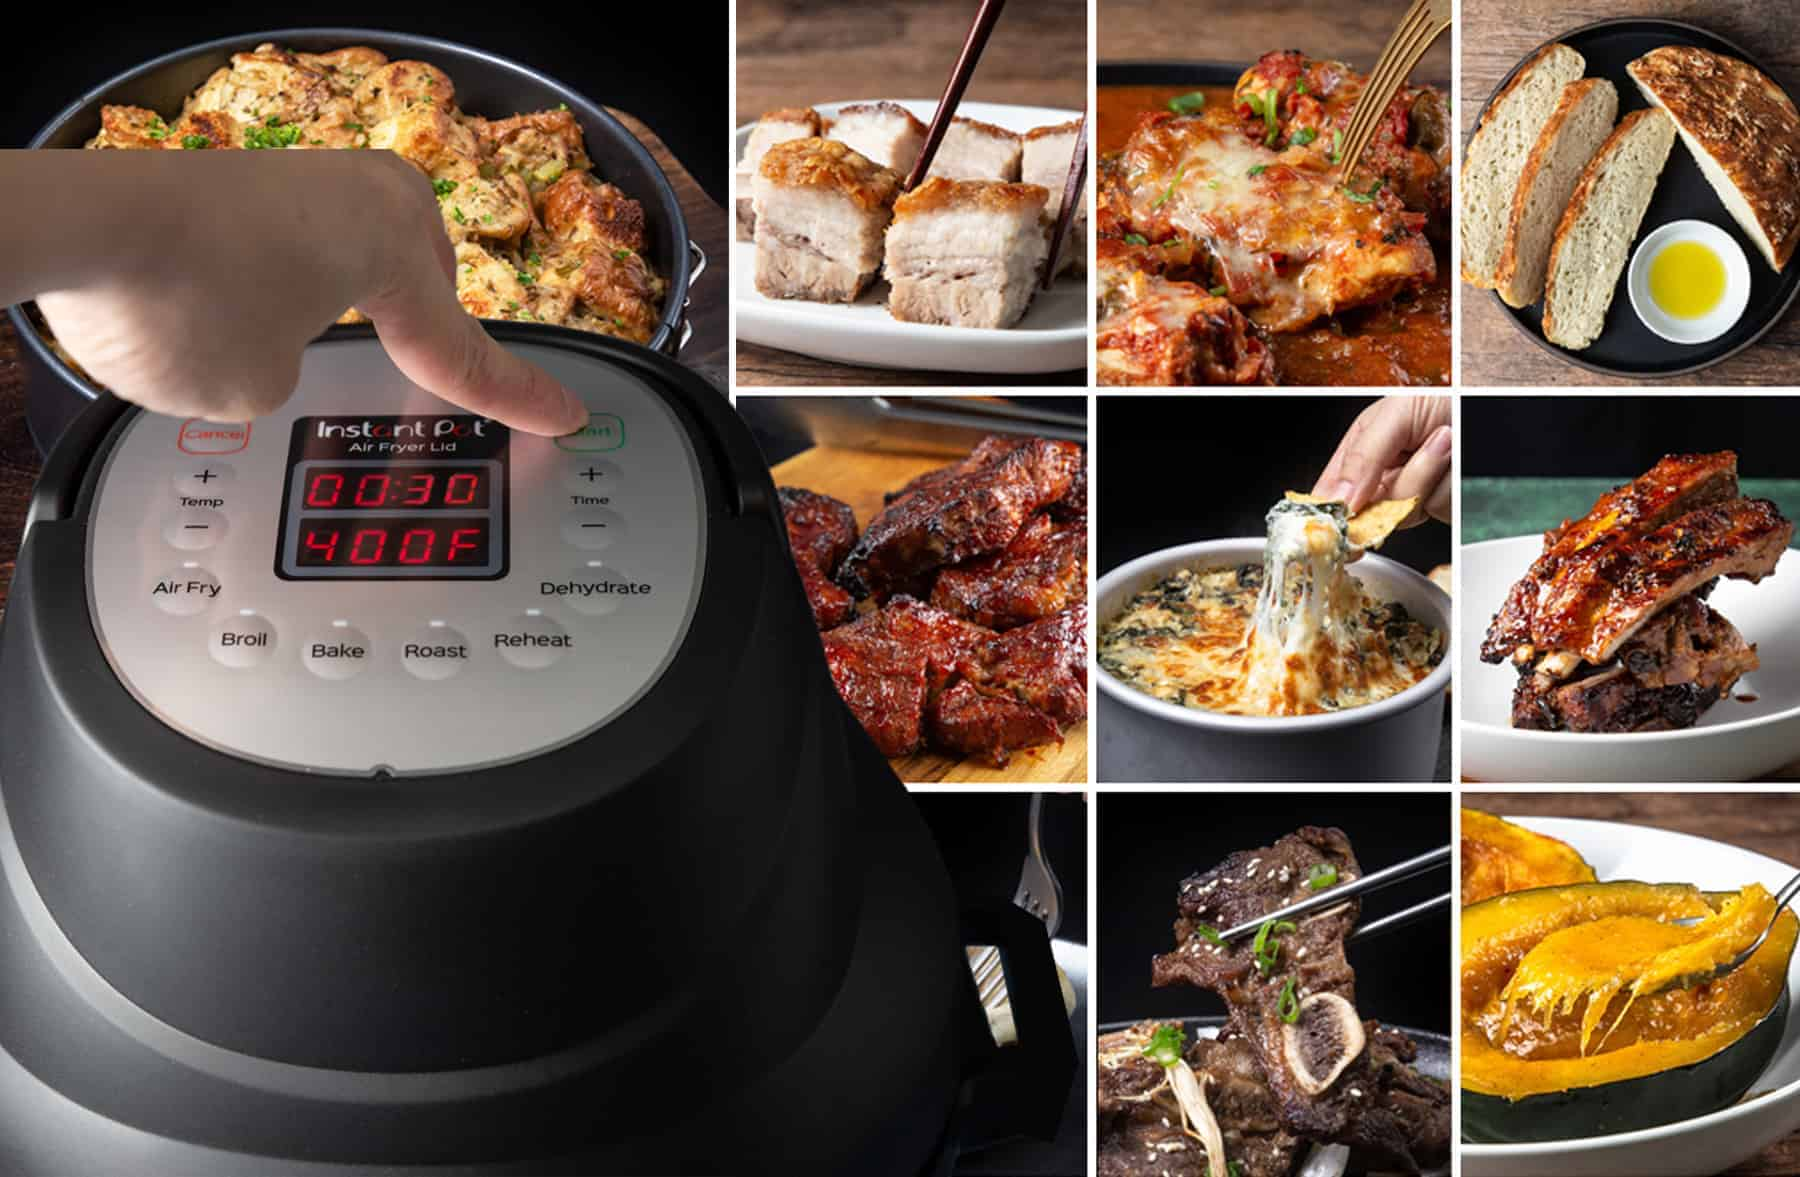 instant pot air fryer lid recipes | instant pot duo crisp recipes | instant pot crisp lid | instant pot air fryer attachment #AmyJacky #InstantPot #AirFryer #recipes